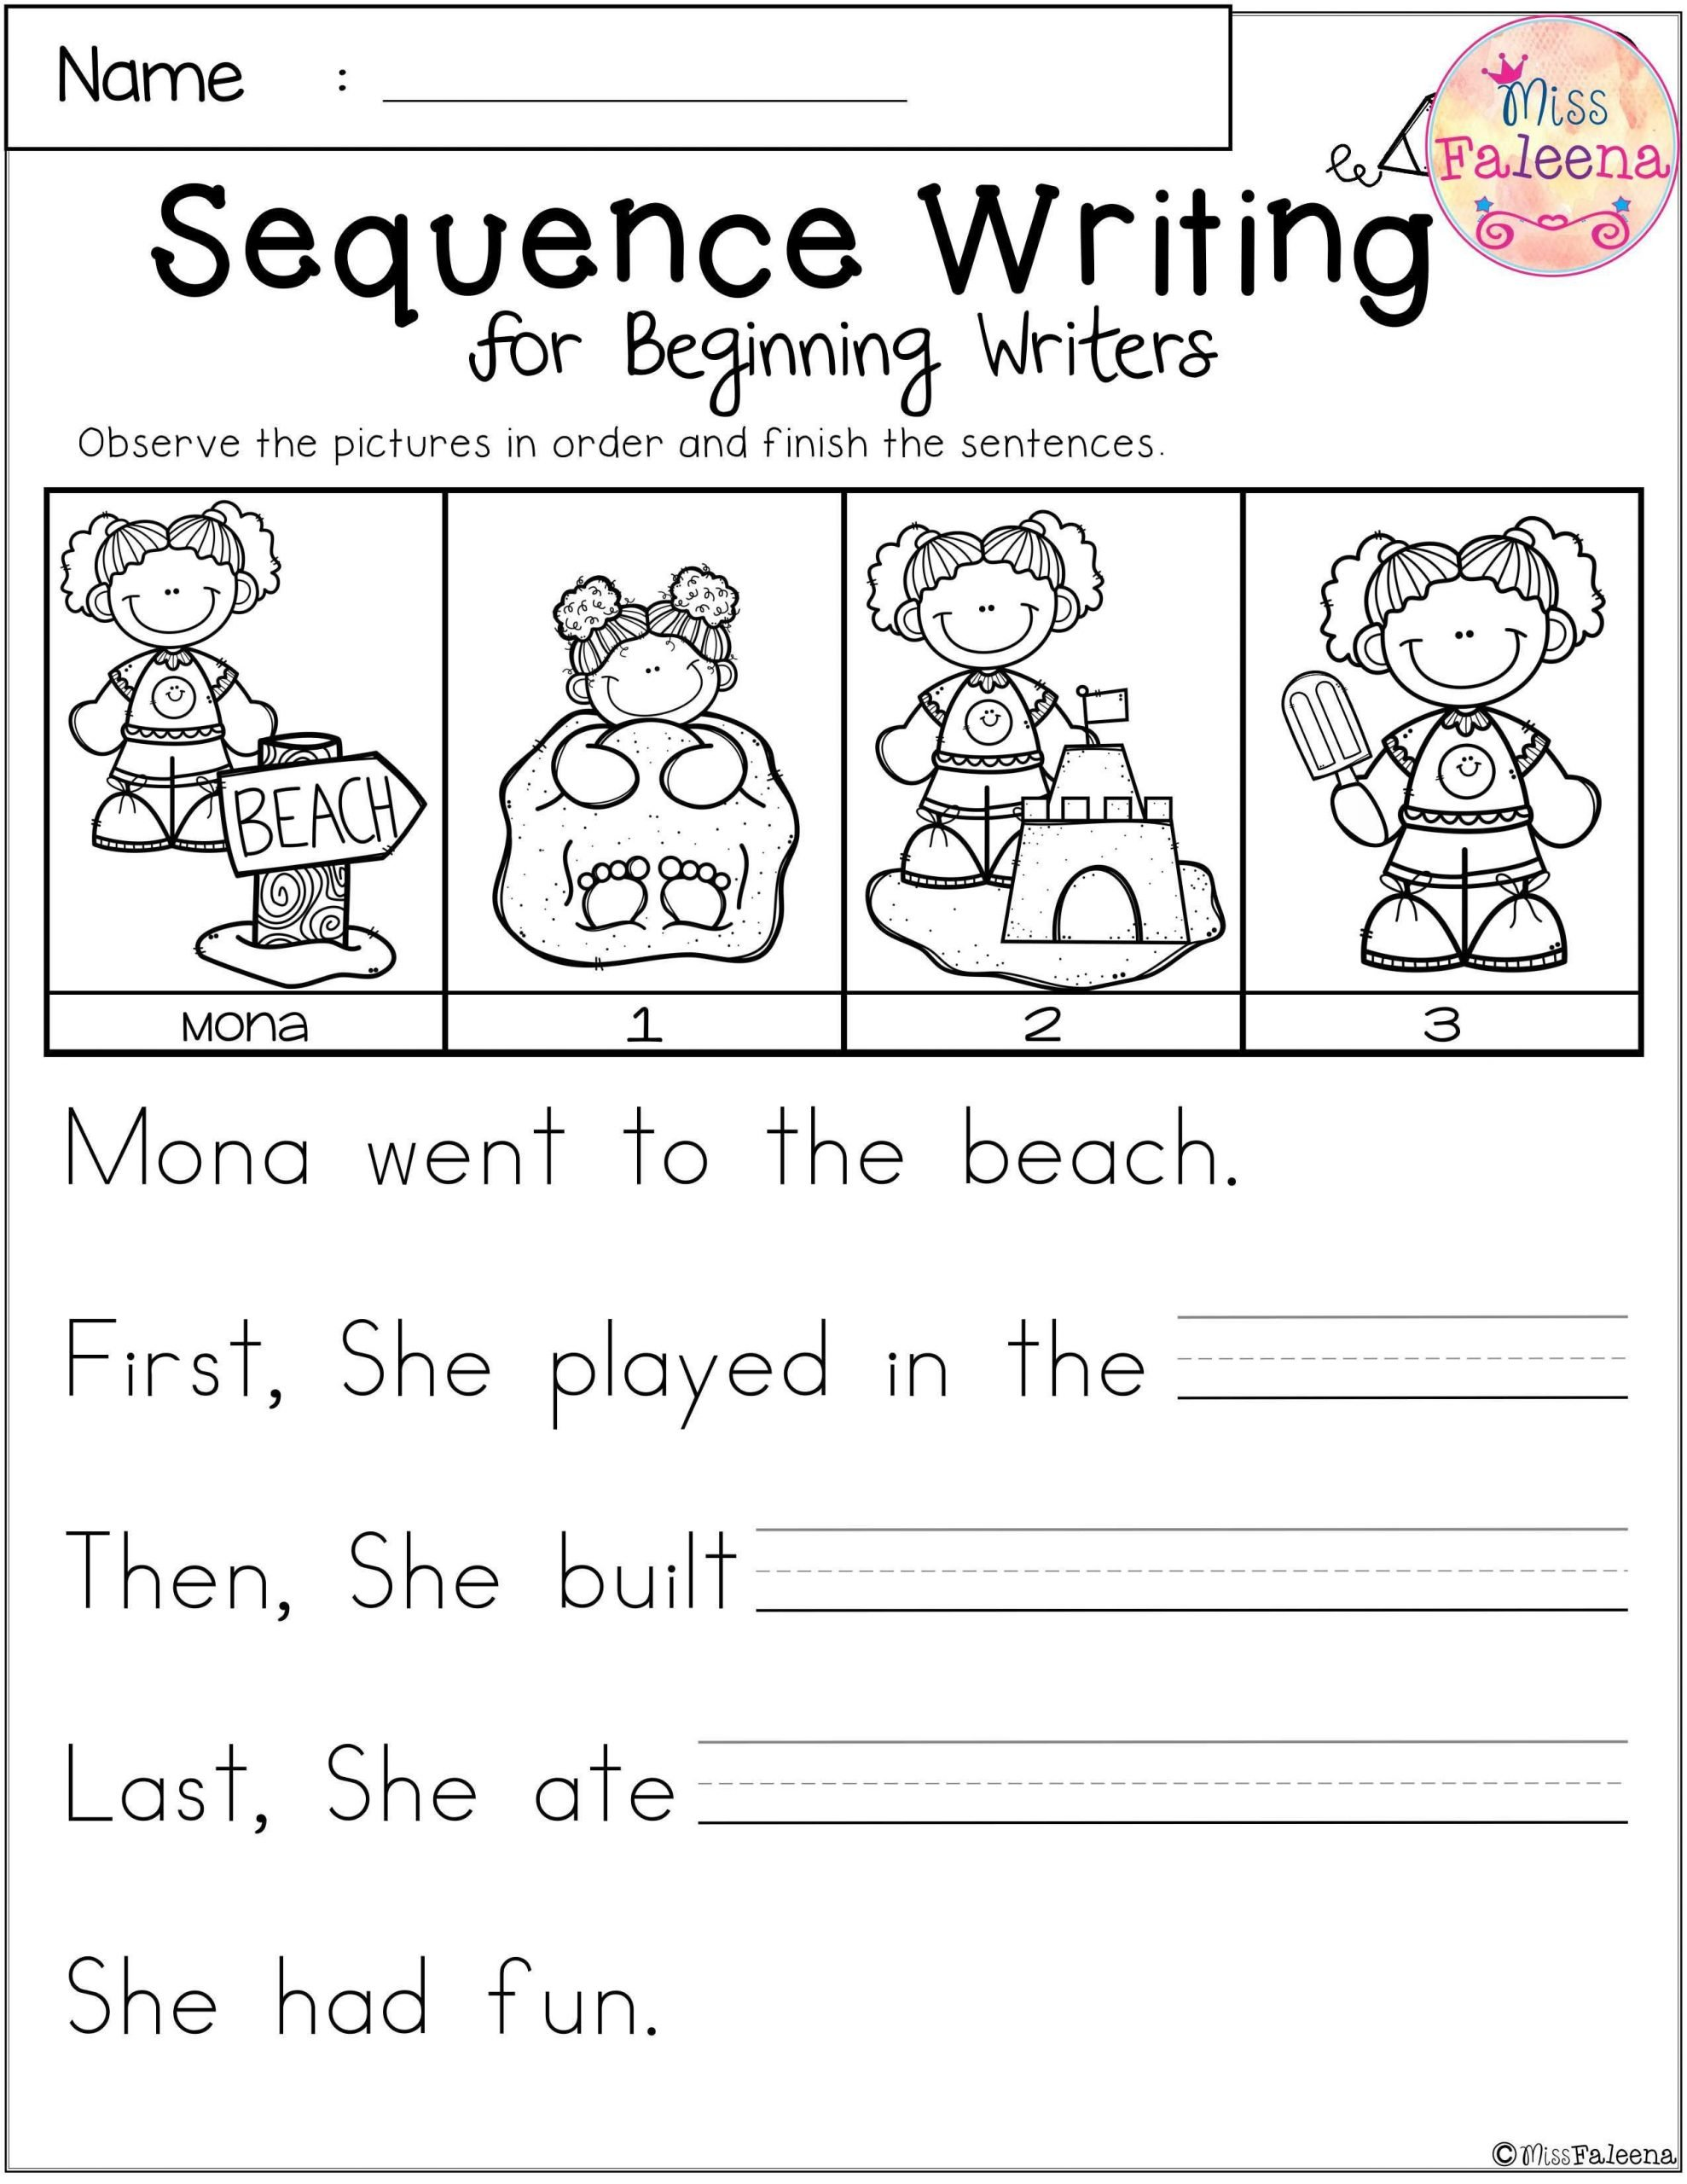 Free Sequencing Worksheets Free Sequence Writing for Beginning Writers